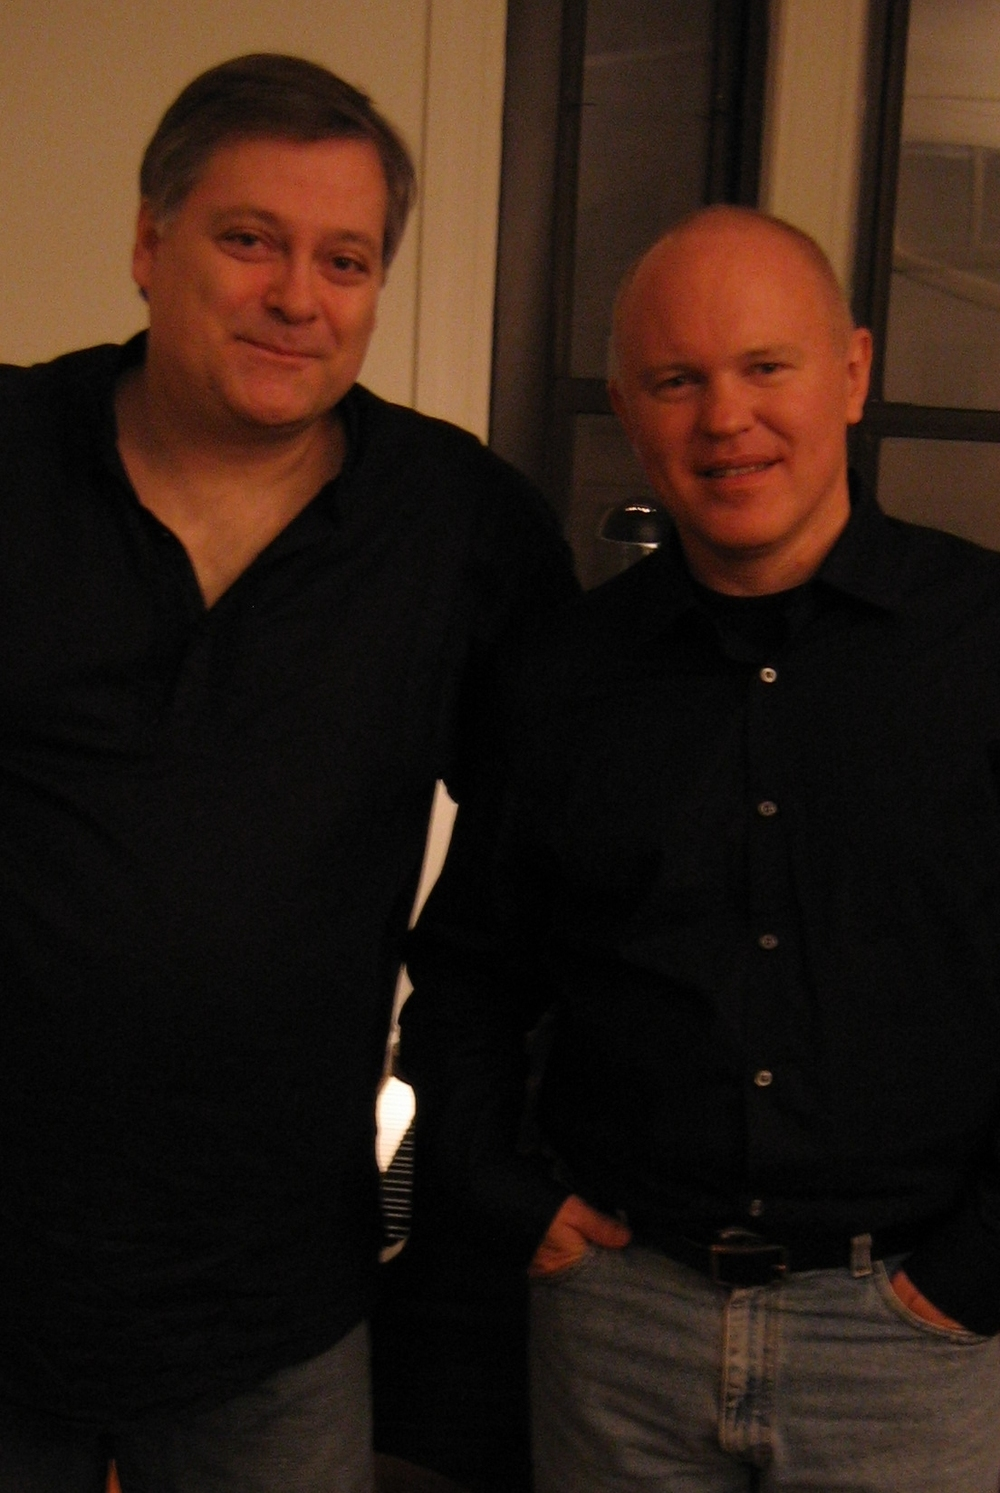 Daron Hagen and Michael Torke. New York City, fall, 2009. (Photo: Gilda Lyons)